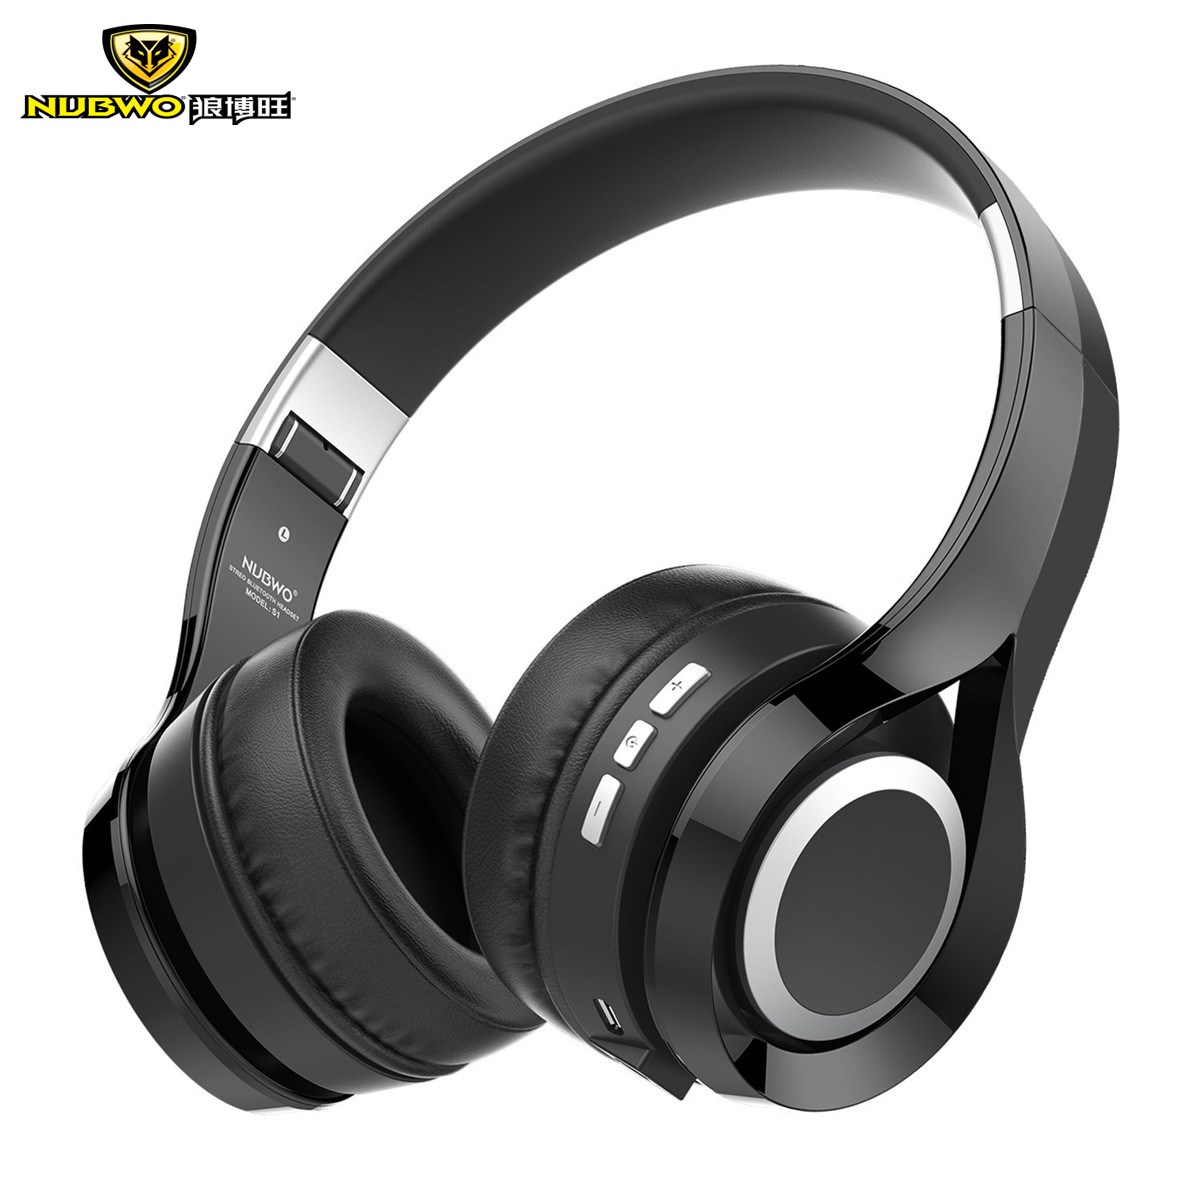 NUBWO S1 Wireless+Wired Bluetooth Headphones Over Ear Foldable Stereo Surround Sound Deep Bass Wireless Headsets With Microphone merrisport wireless bluetooth foldable over ear headphones headsets with mic for for cellphones ipad iphone laptop rose gold